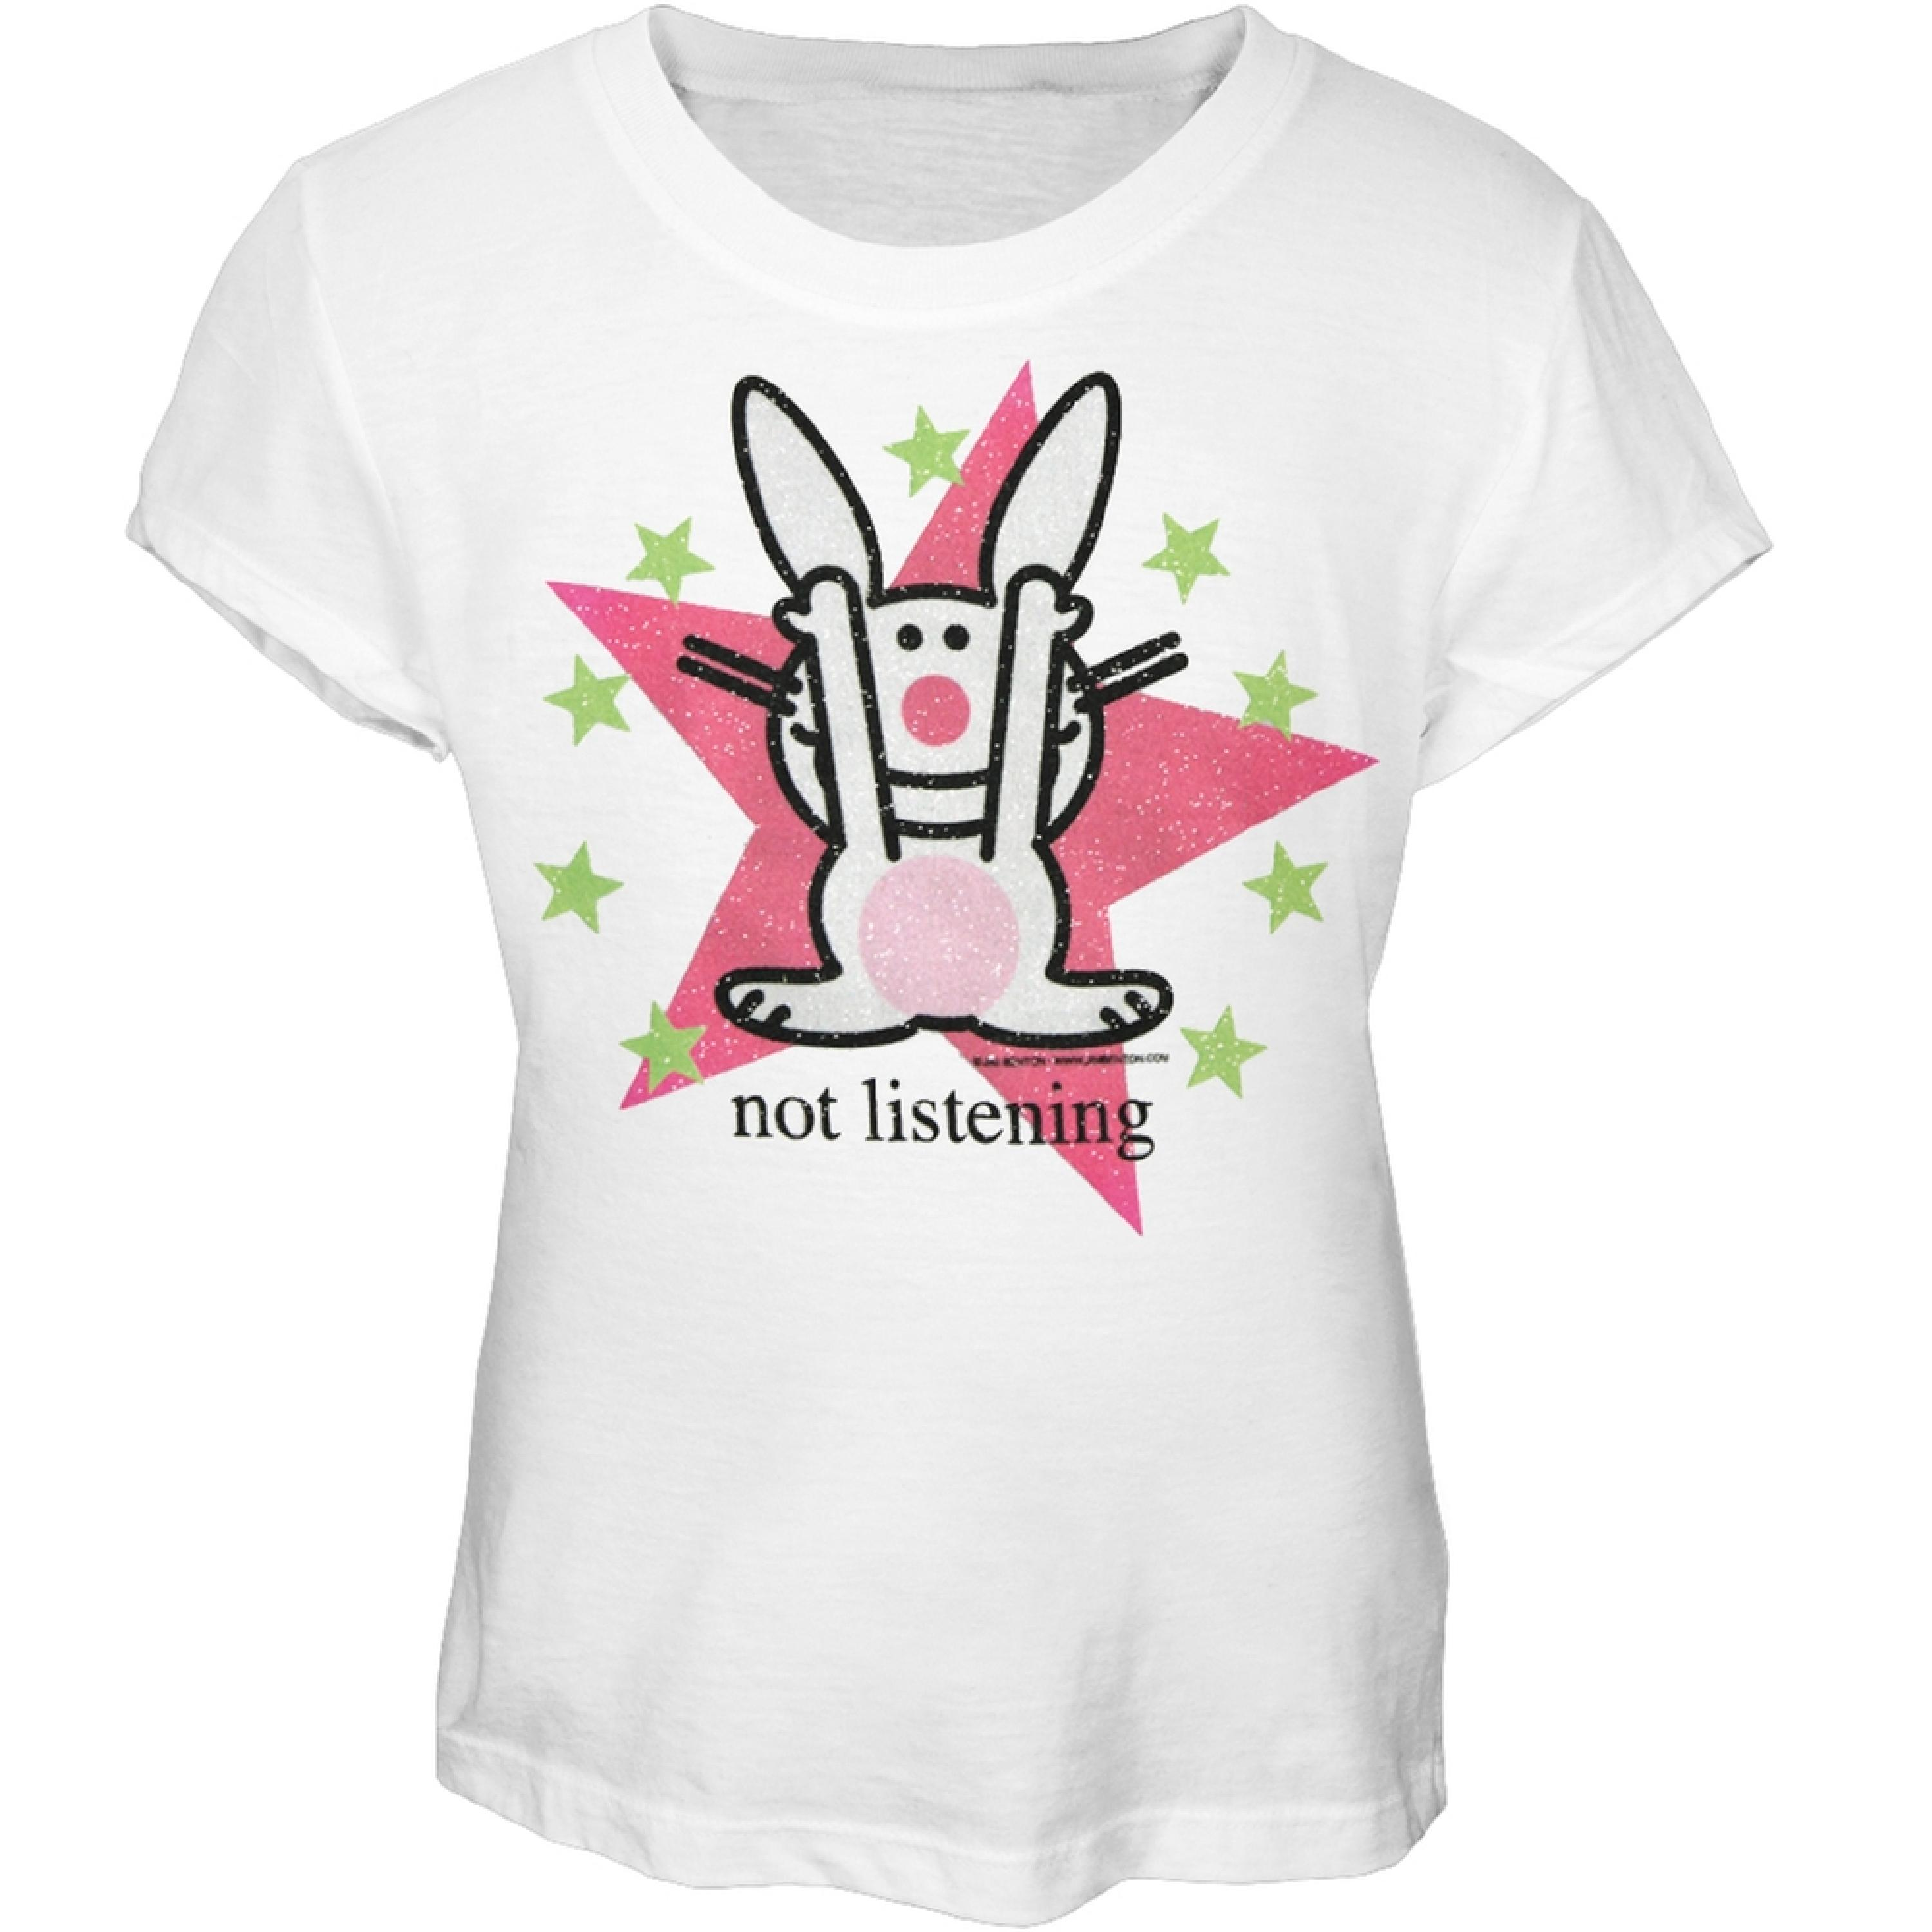 Happy Bunny - Not Listening Girls Youth T-Shirt